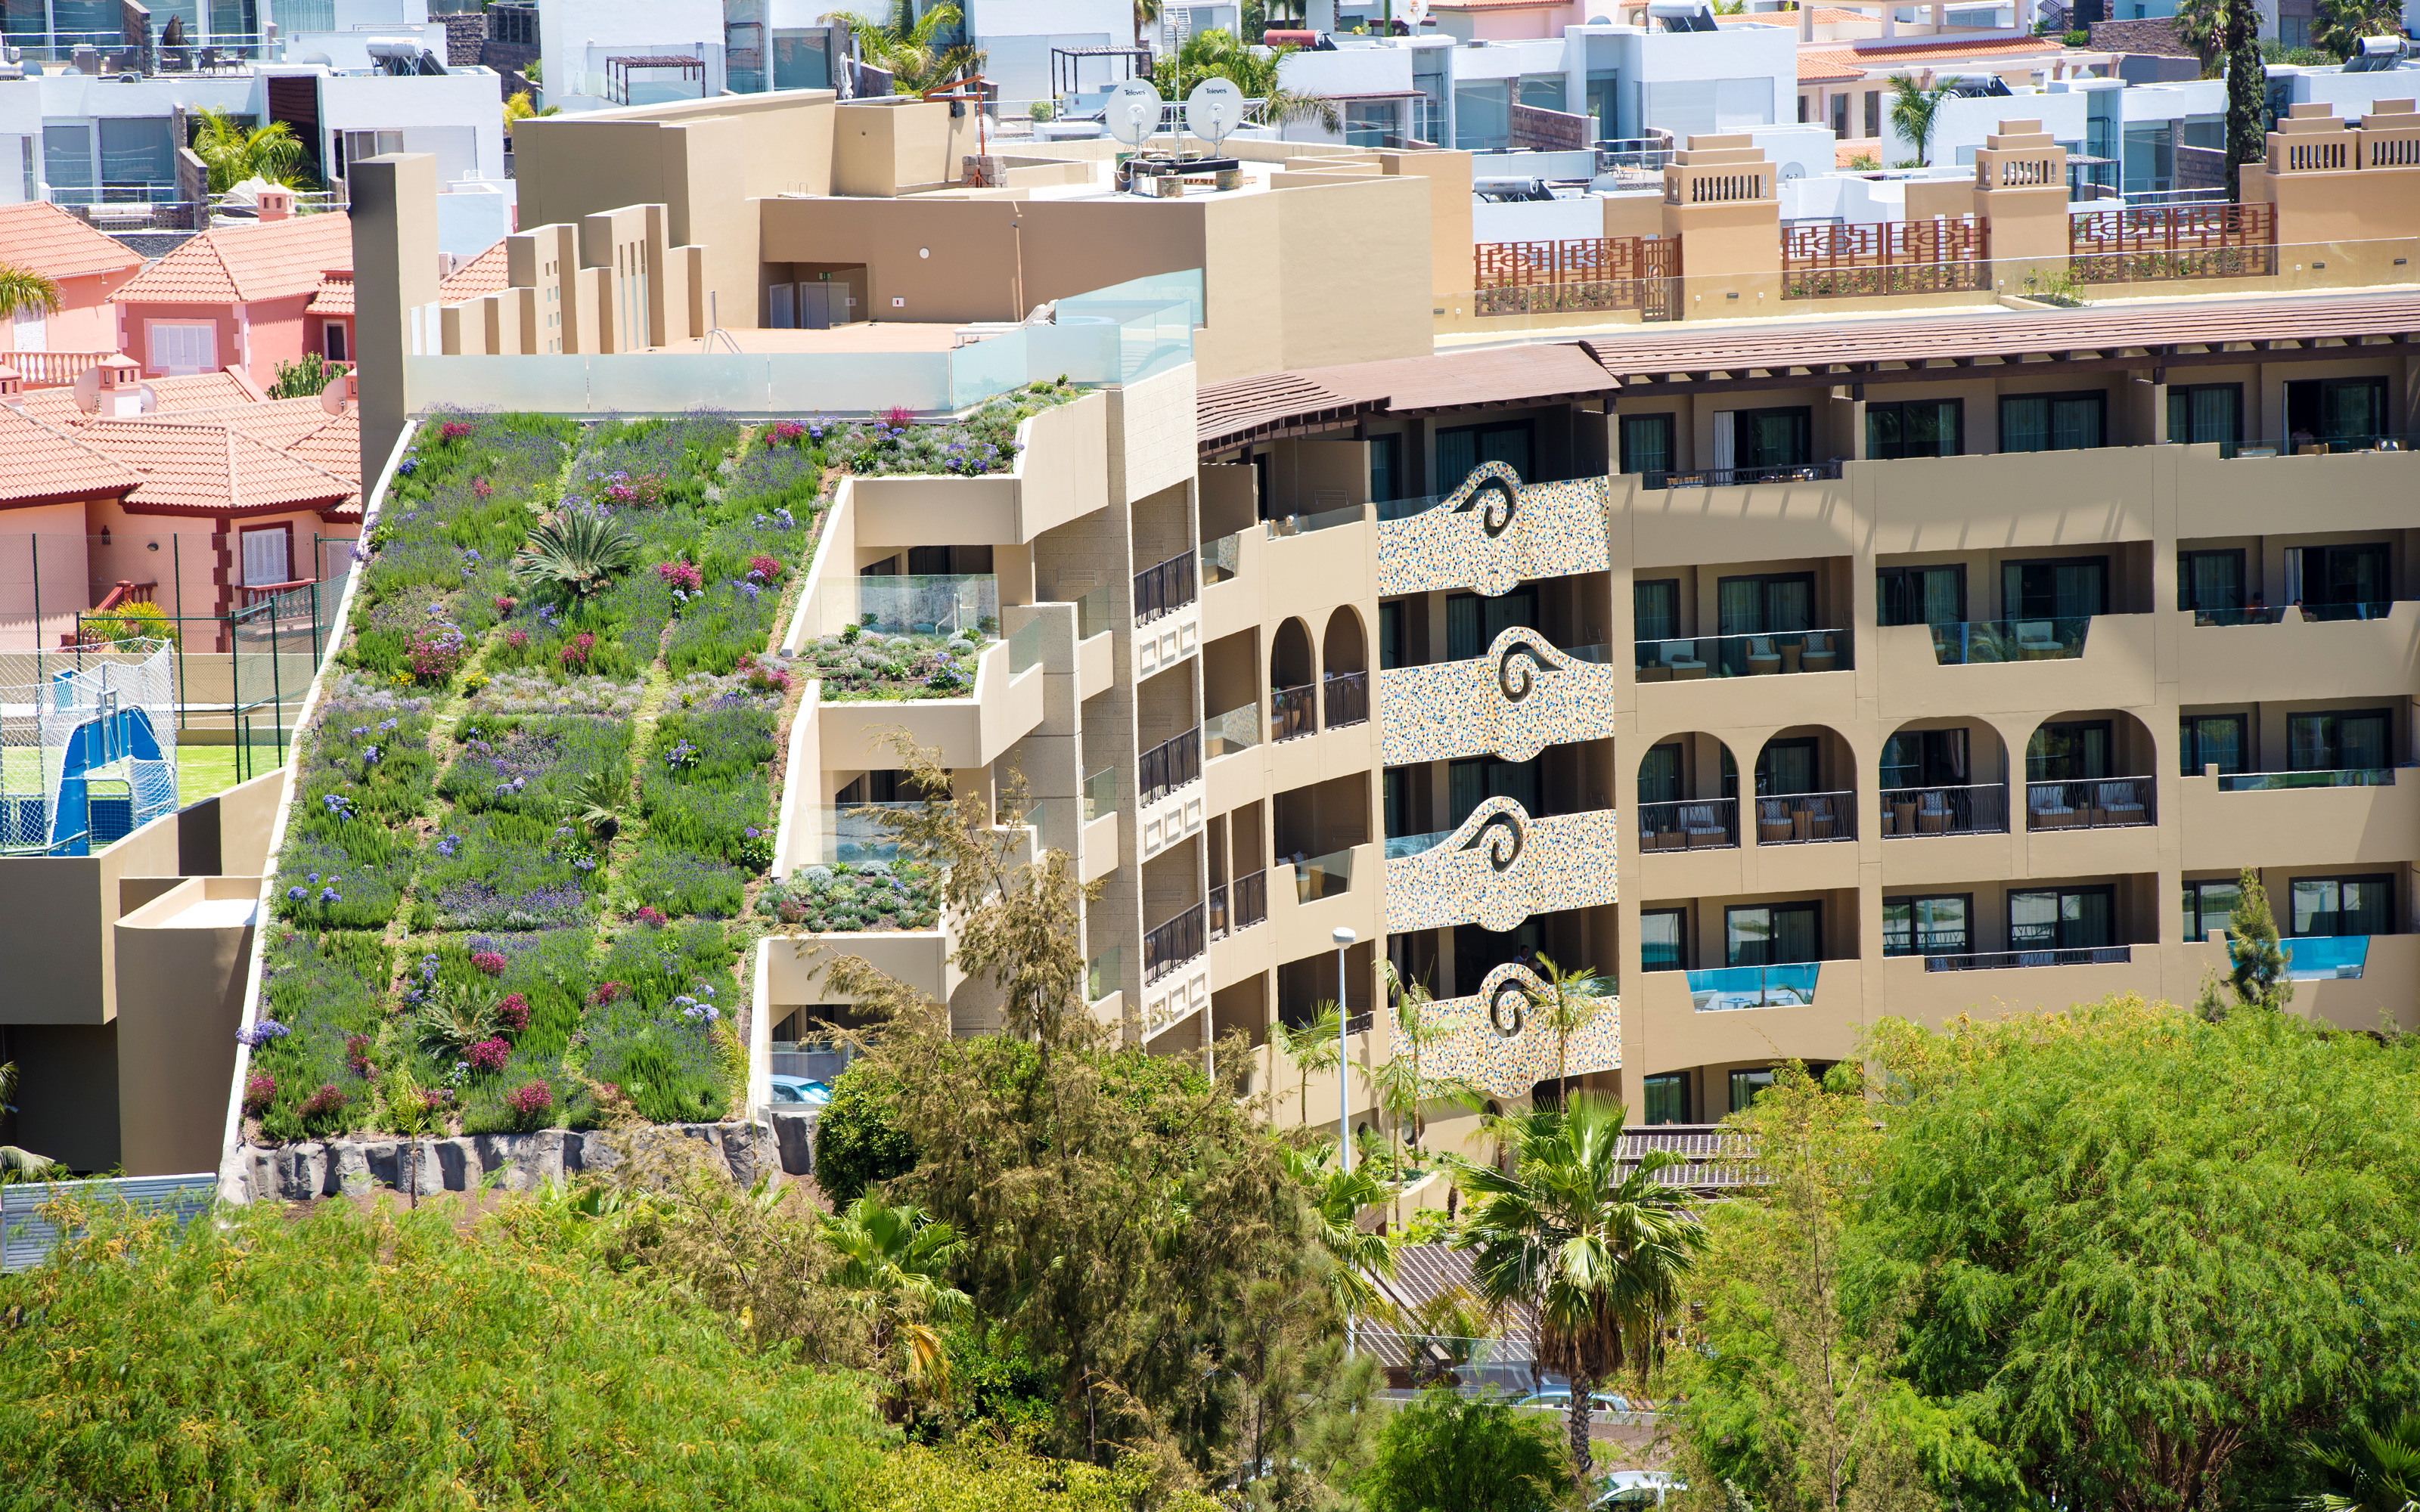 Hotel building with steep pitched green roof